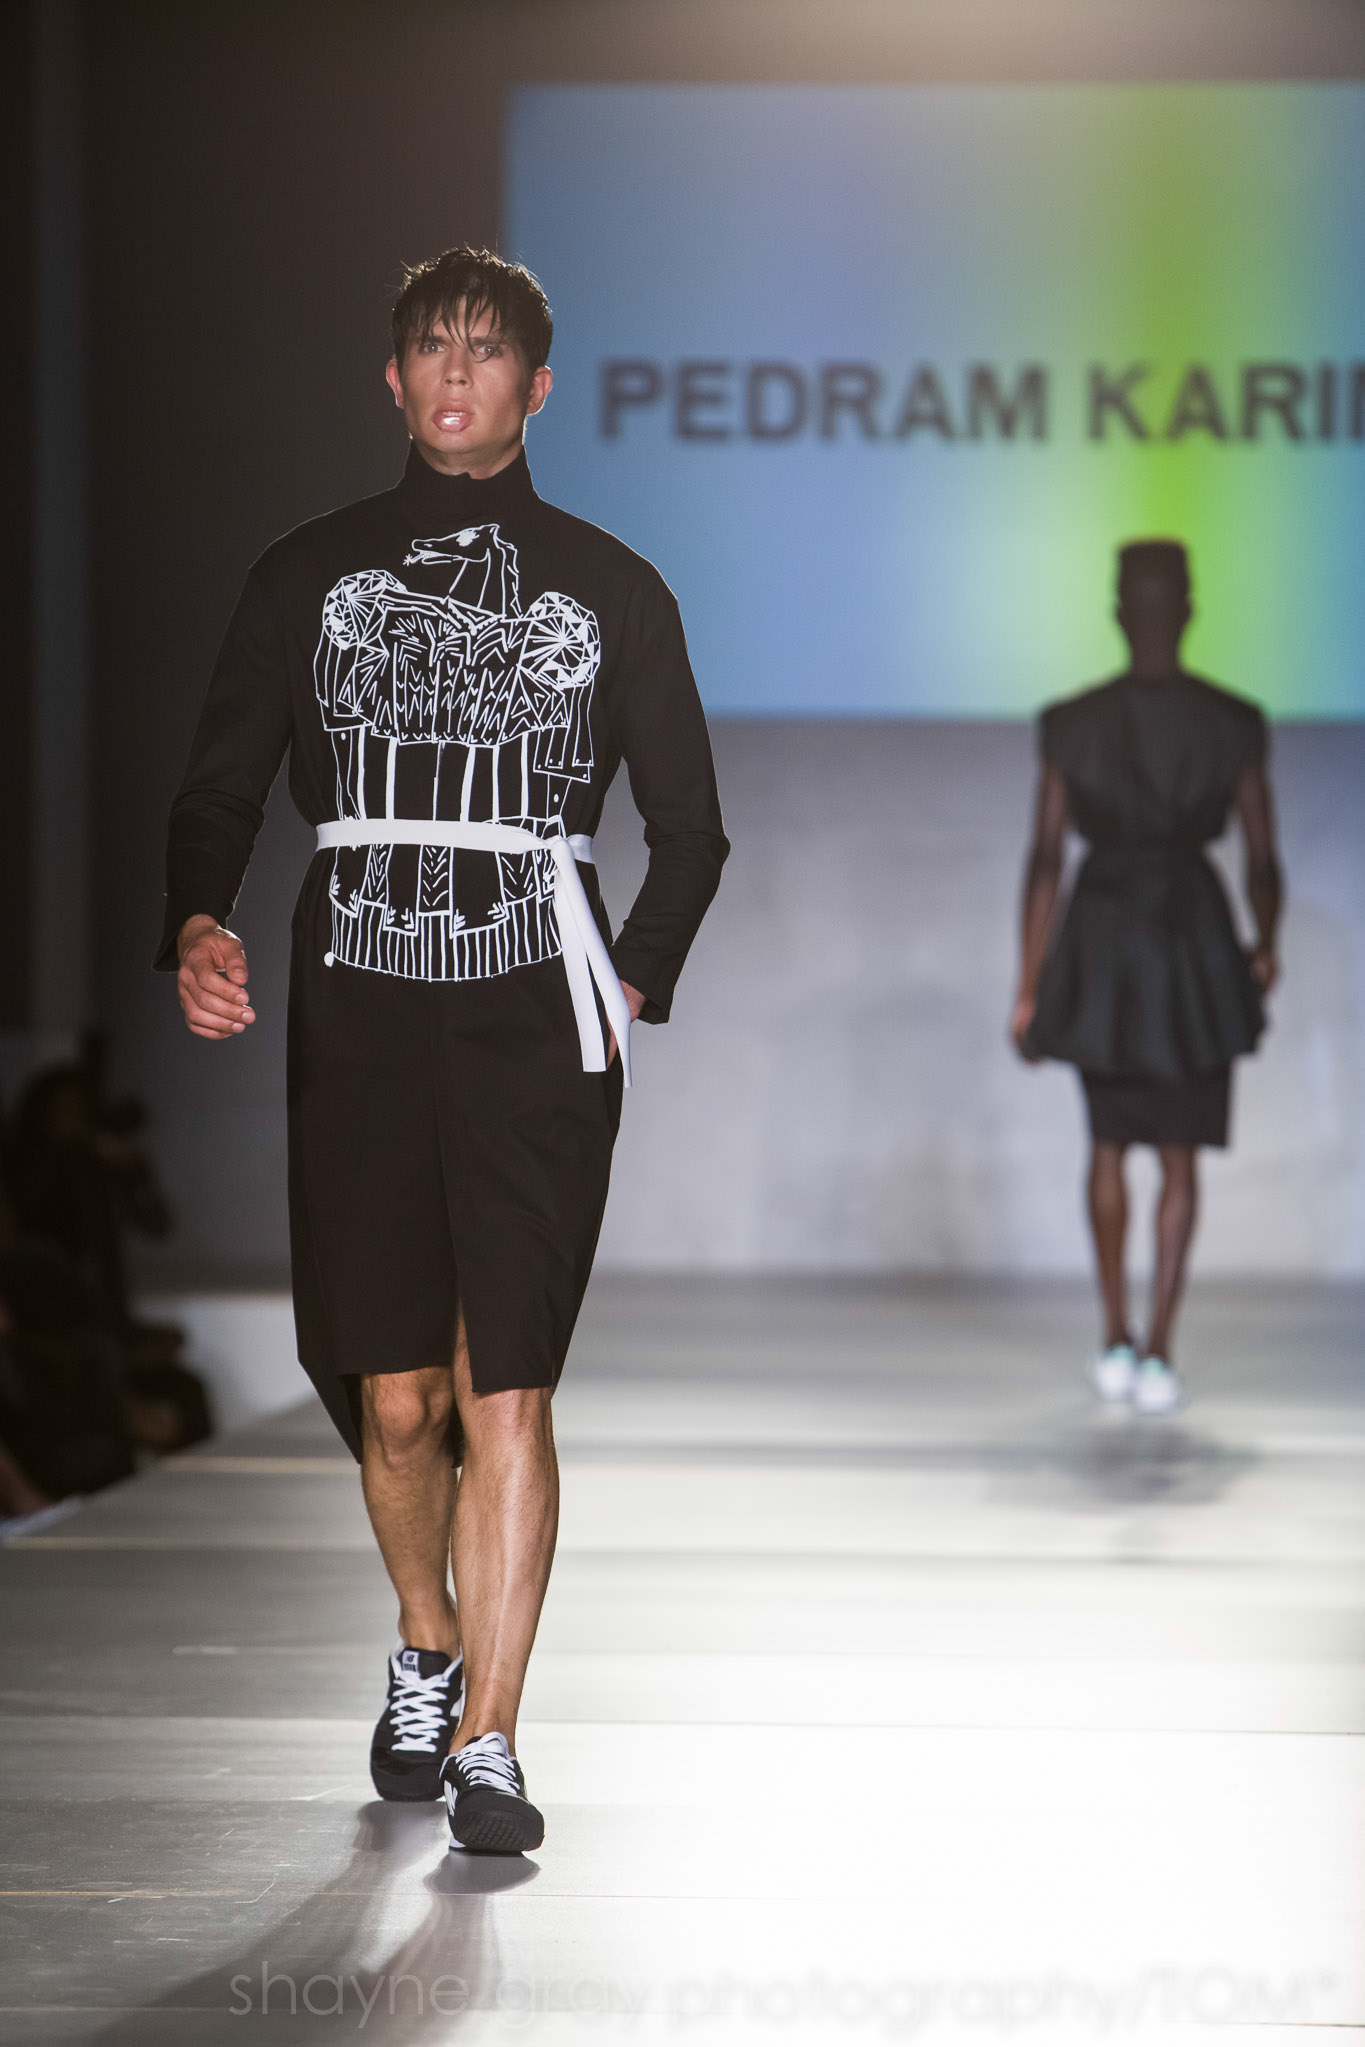 Shayne-Gray-Toronto-men's-fashion_week-TOM-Pedram-Karimi-8909.jpg